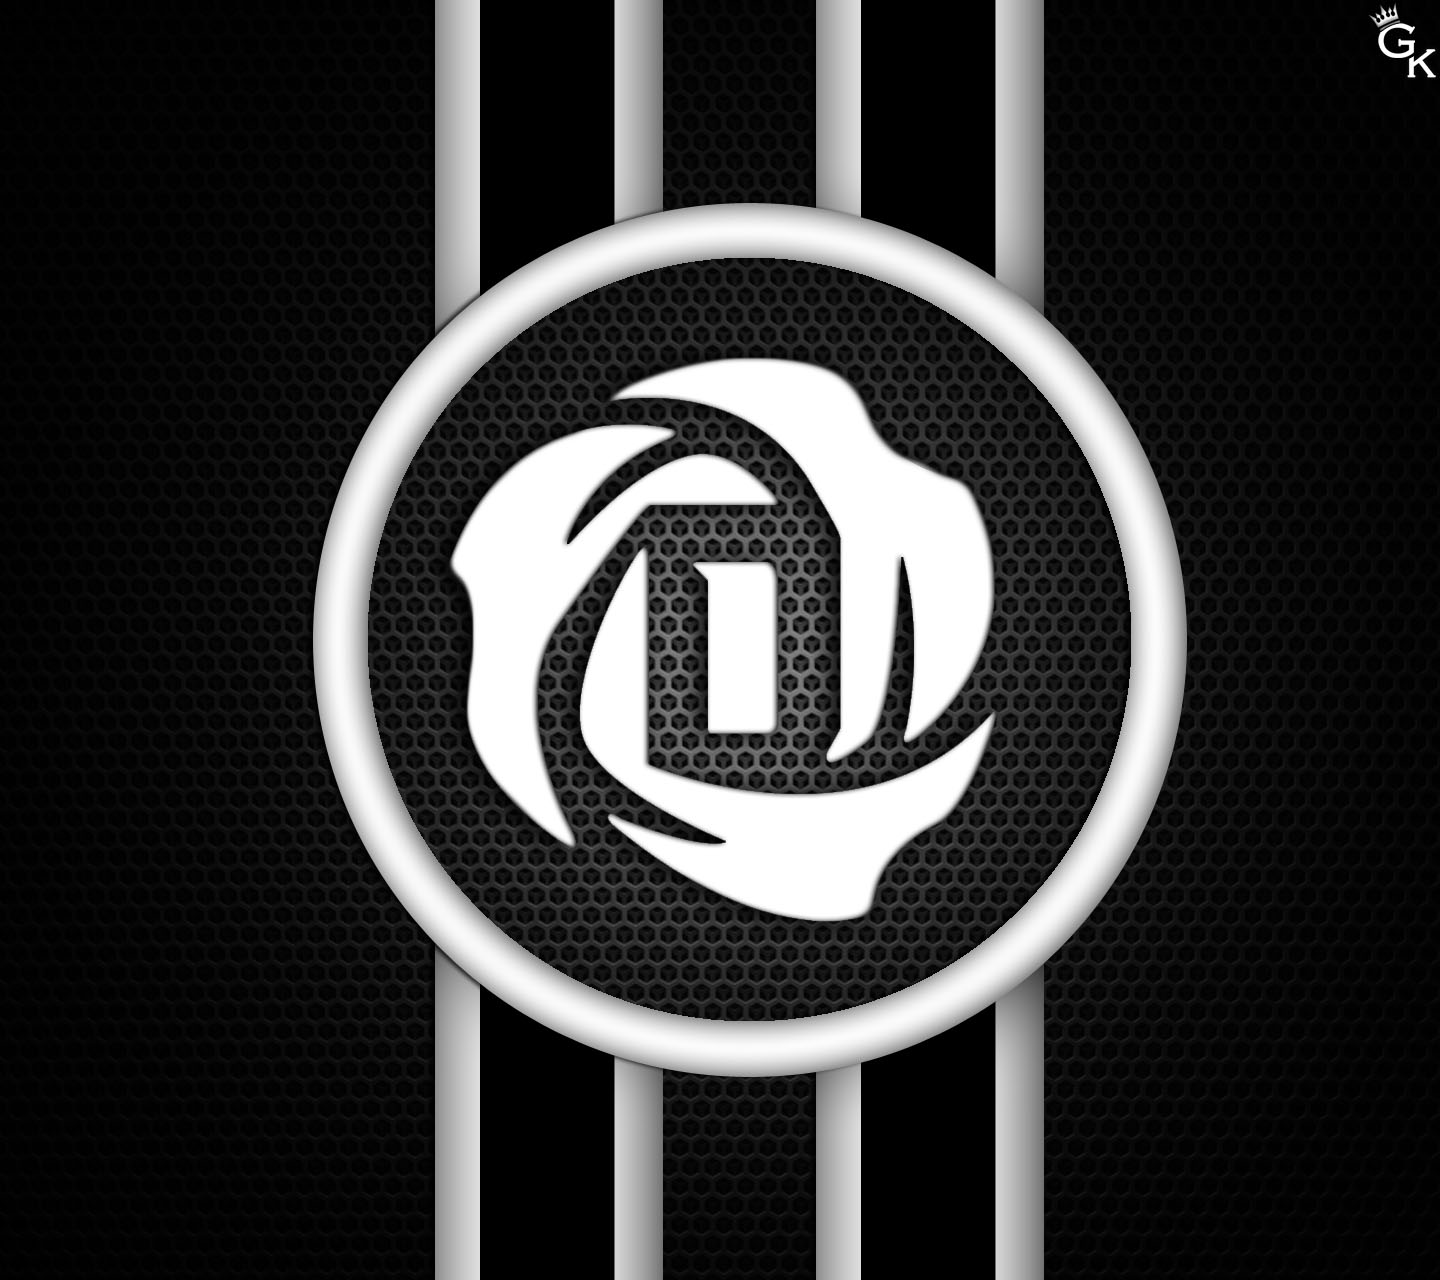 Derrick Rose Emblem GK Phone Wallpaper by SuPeRxJOKER on 1440x1280